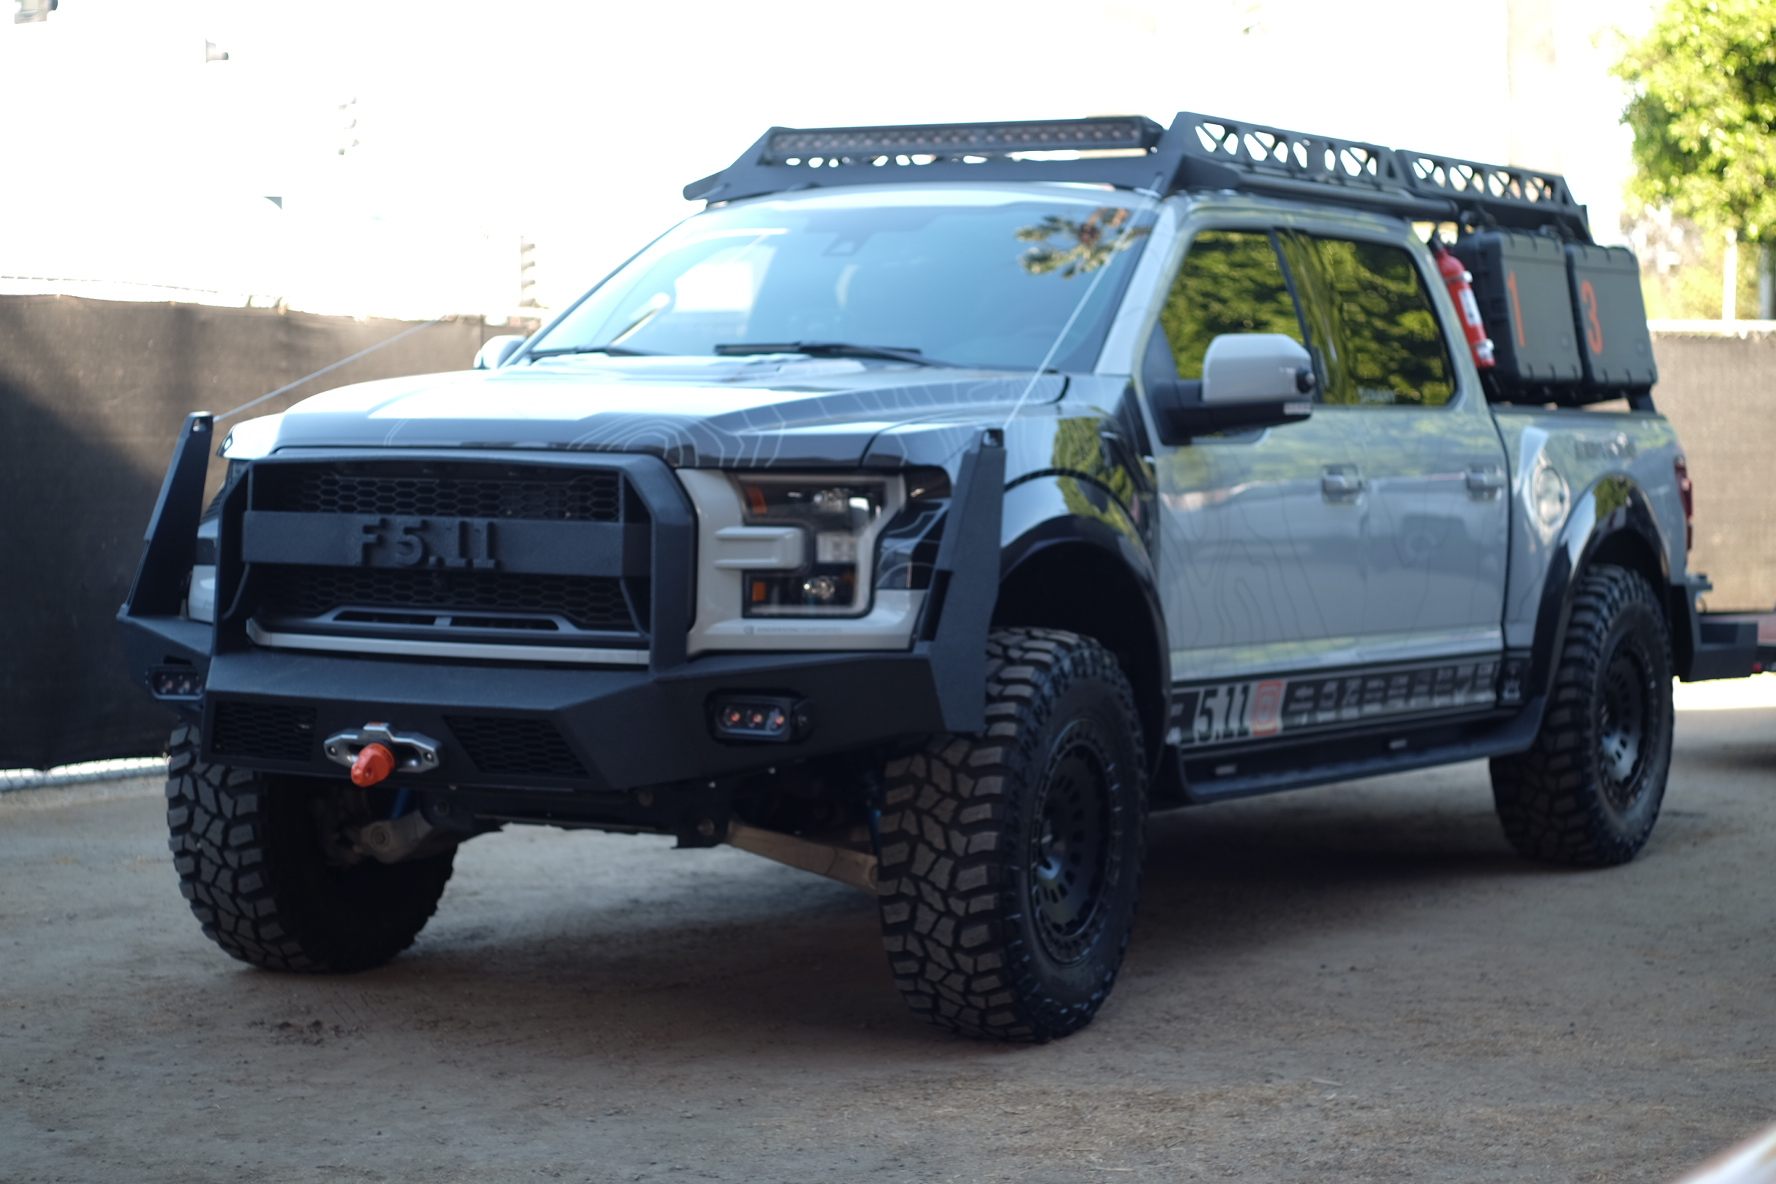 5.11 Tactical / KOLAB Agency Ford F-150 Raptor